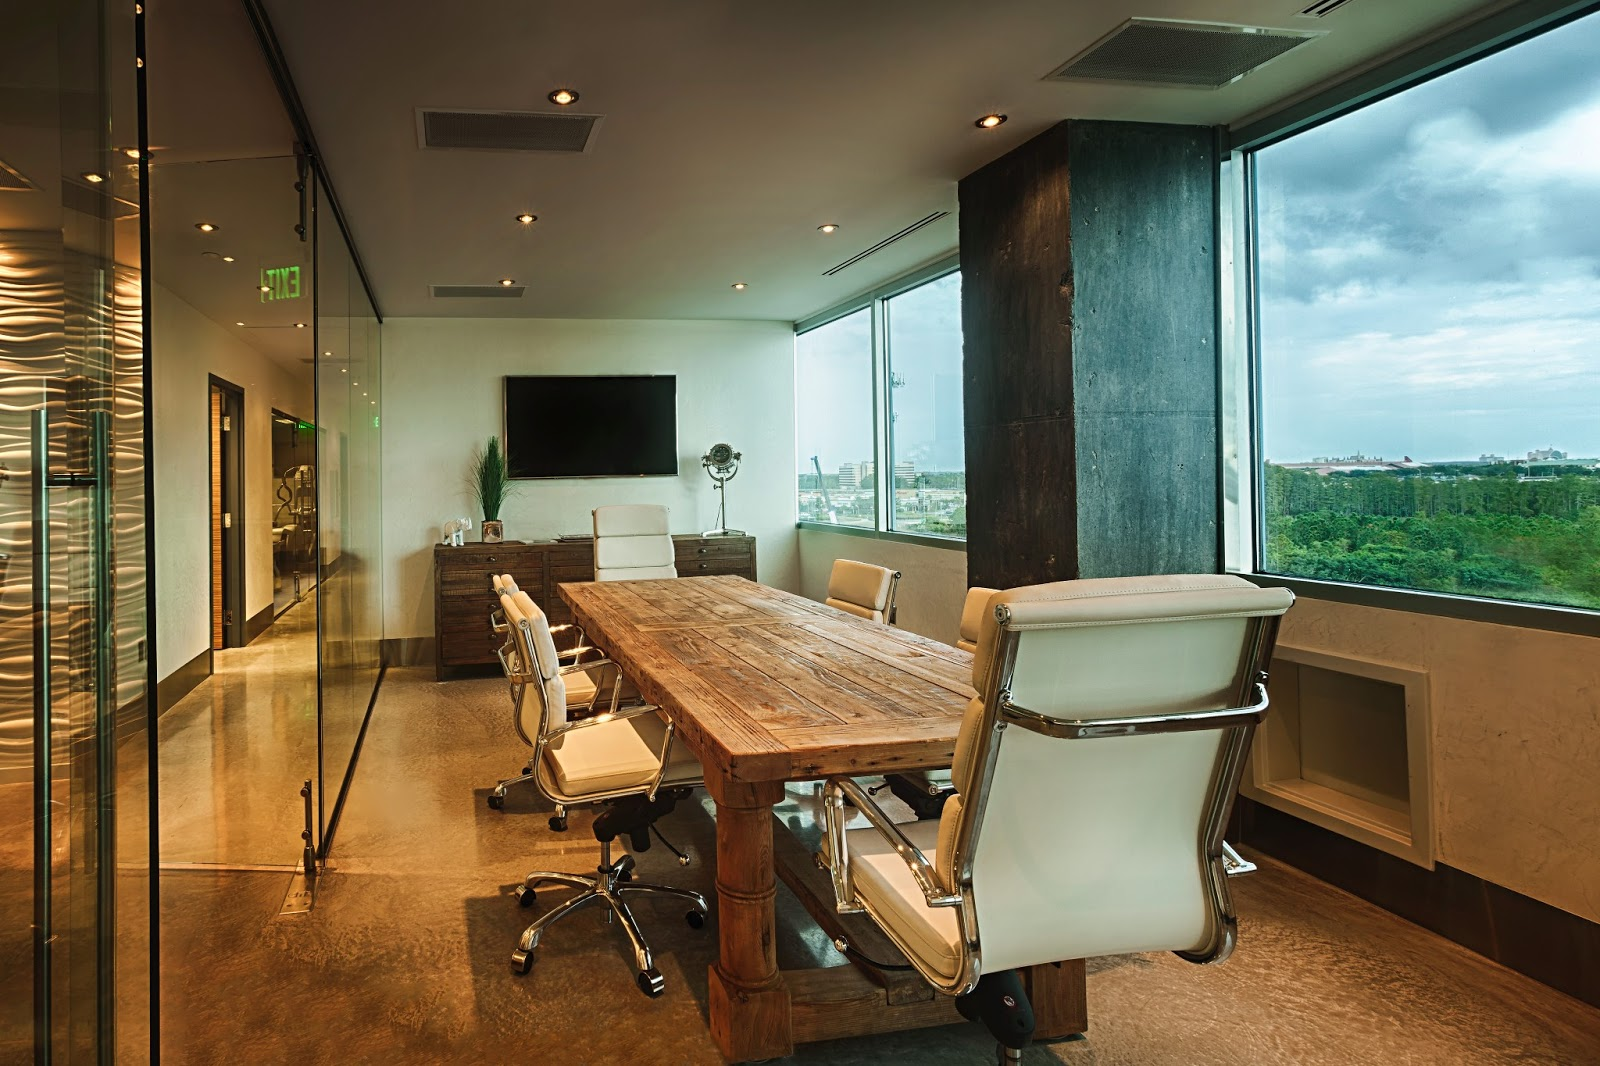 Central Florida Orlando Commercial Photography Interiors Northboro Builders Office Space